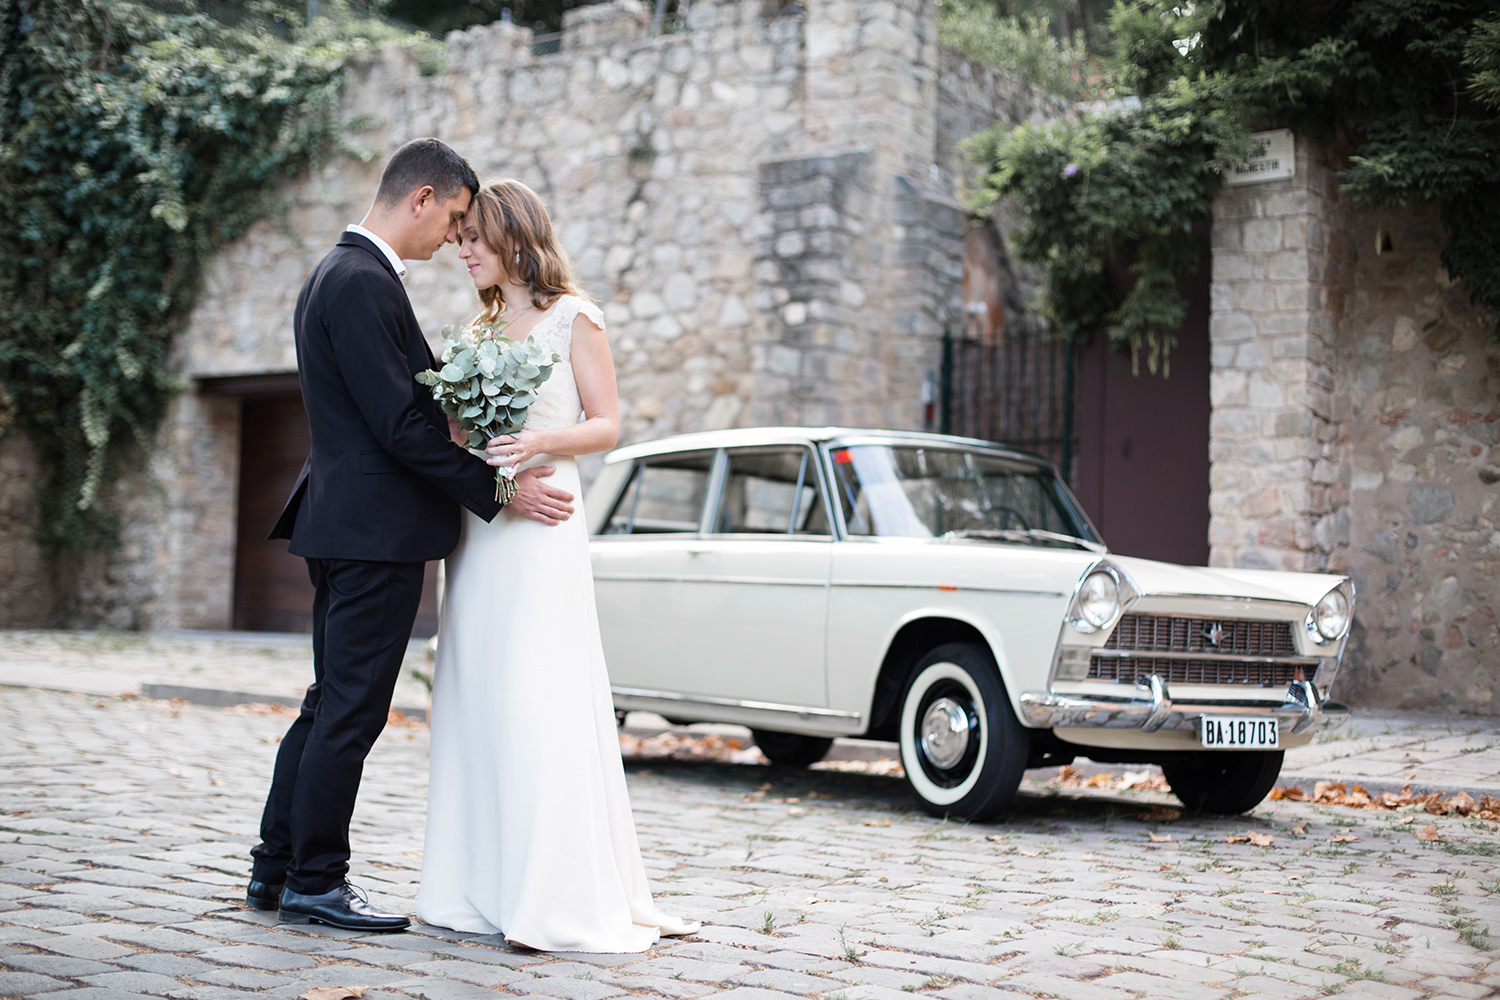 Young love | Bridal photo shoot in Barcelona